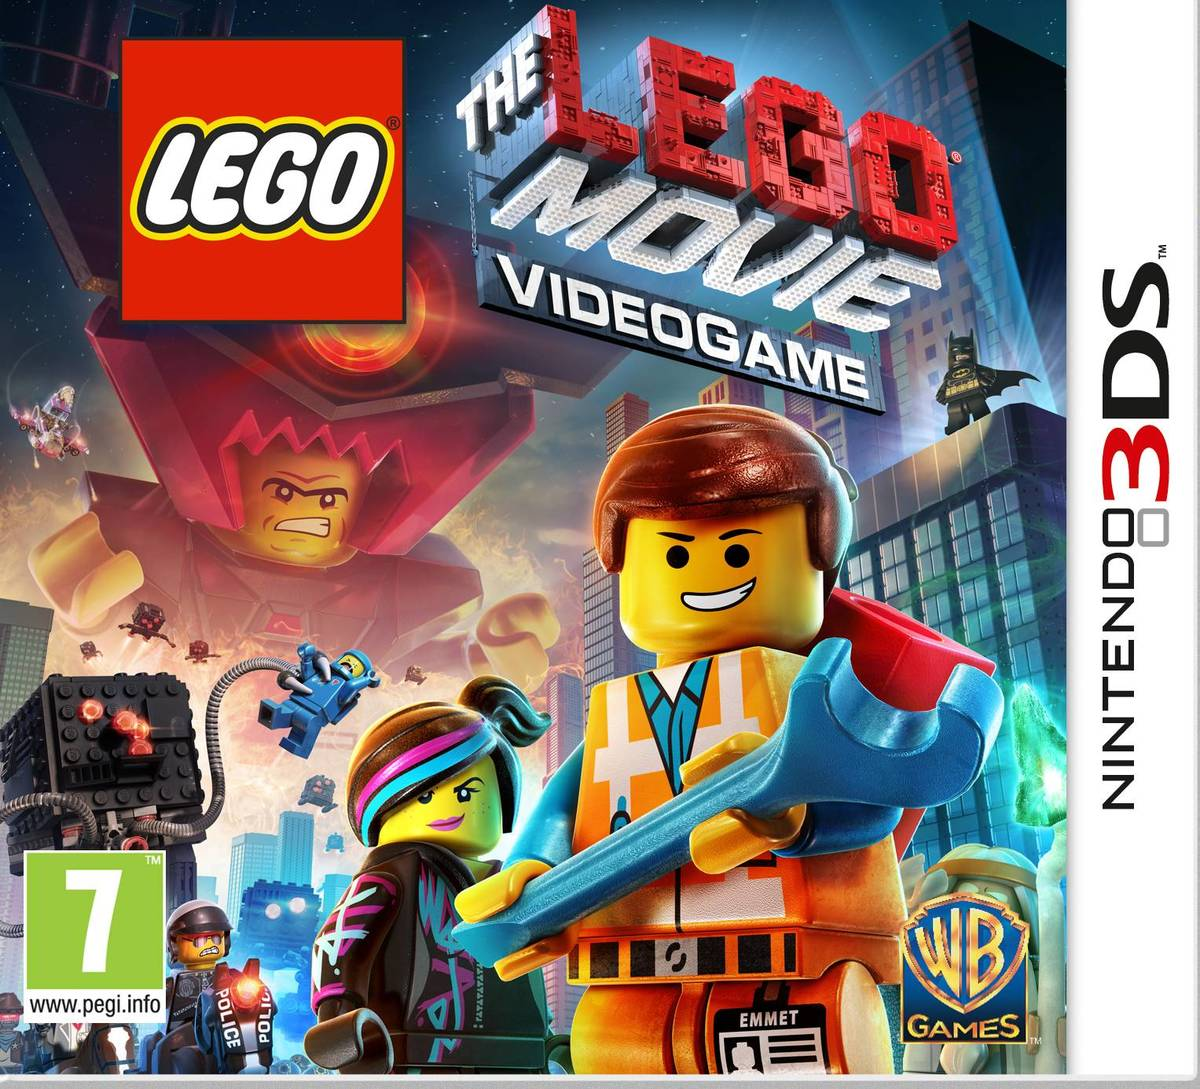 LEGO Movie: Videogame (English in game) (ES)